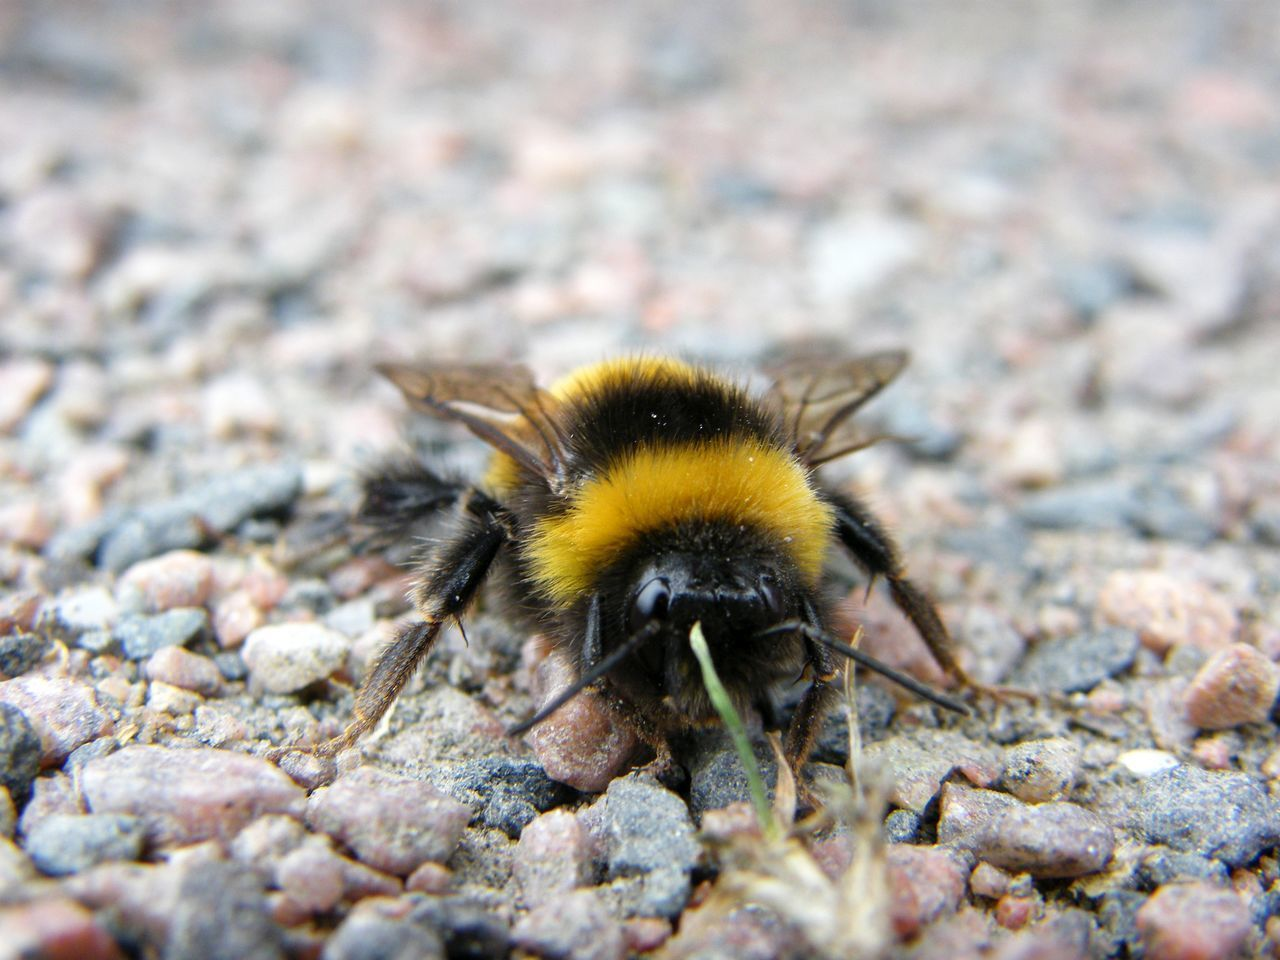 CLOSE-UP OF BEE ON A ROCK